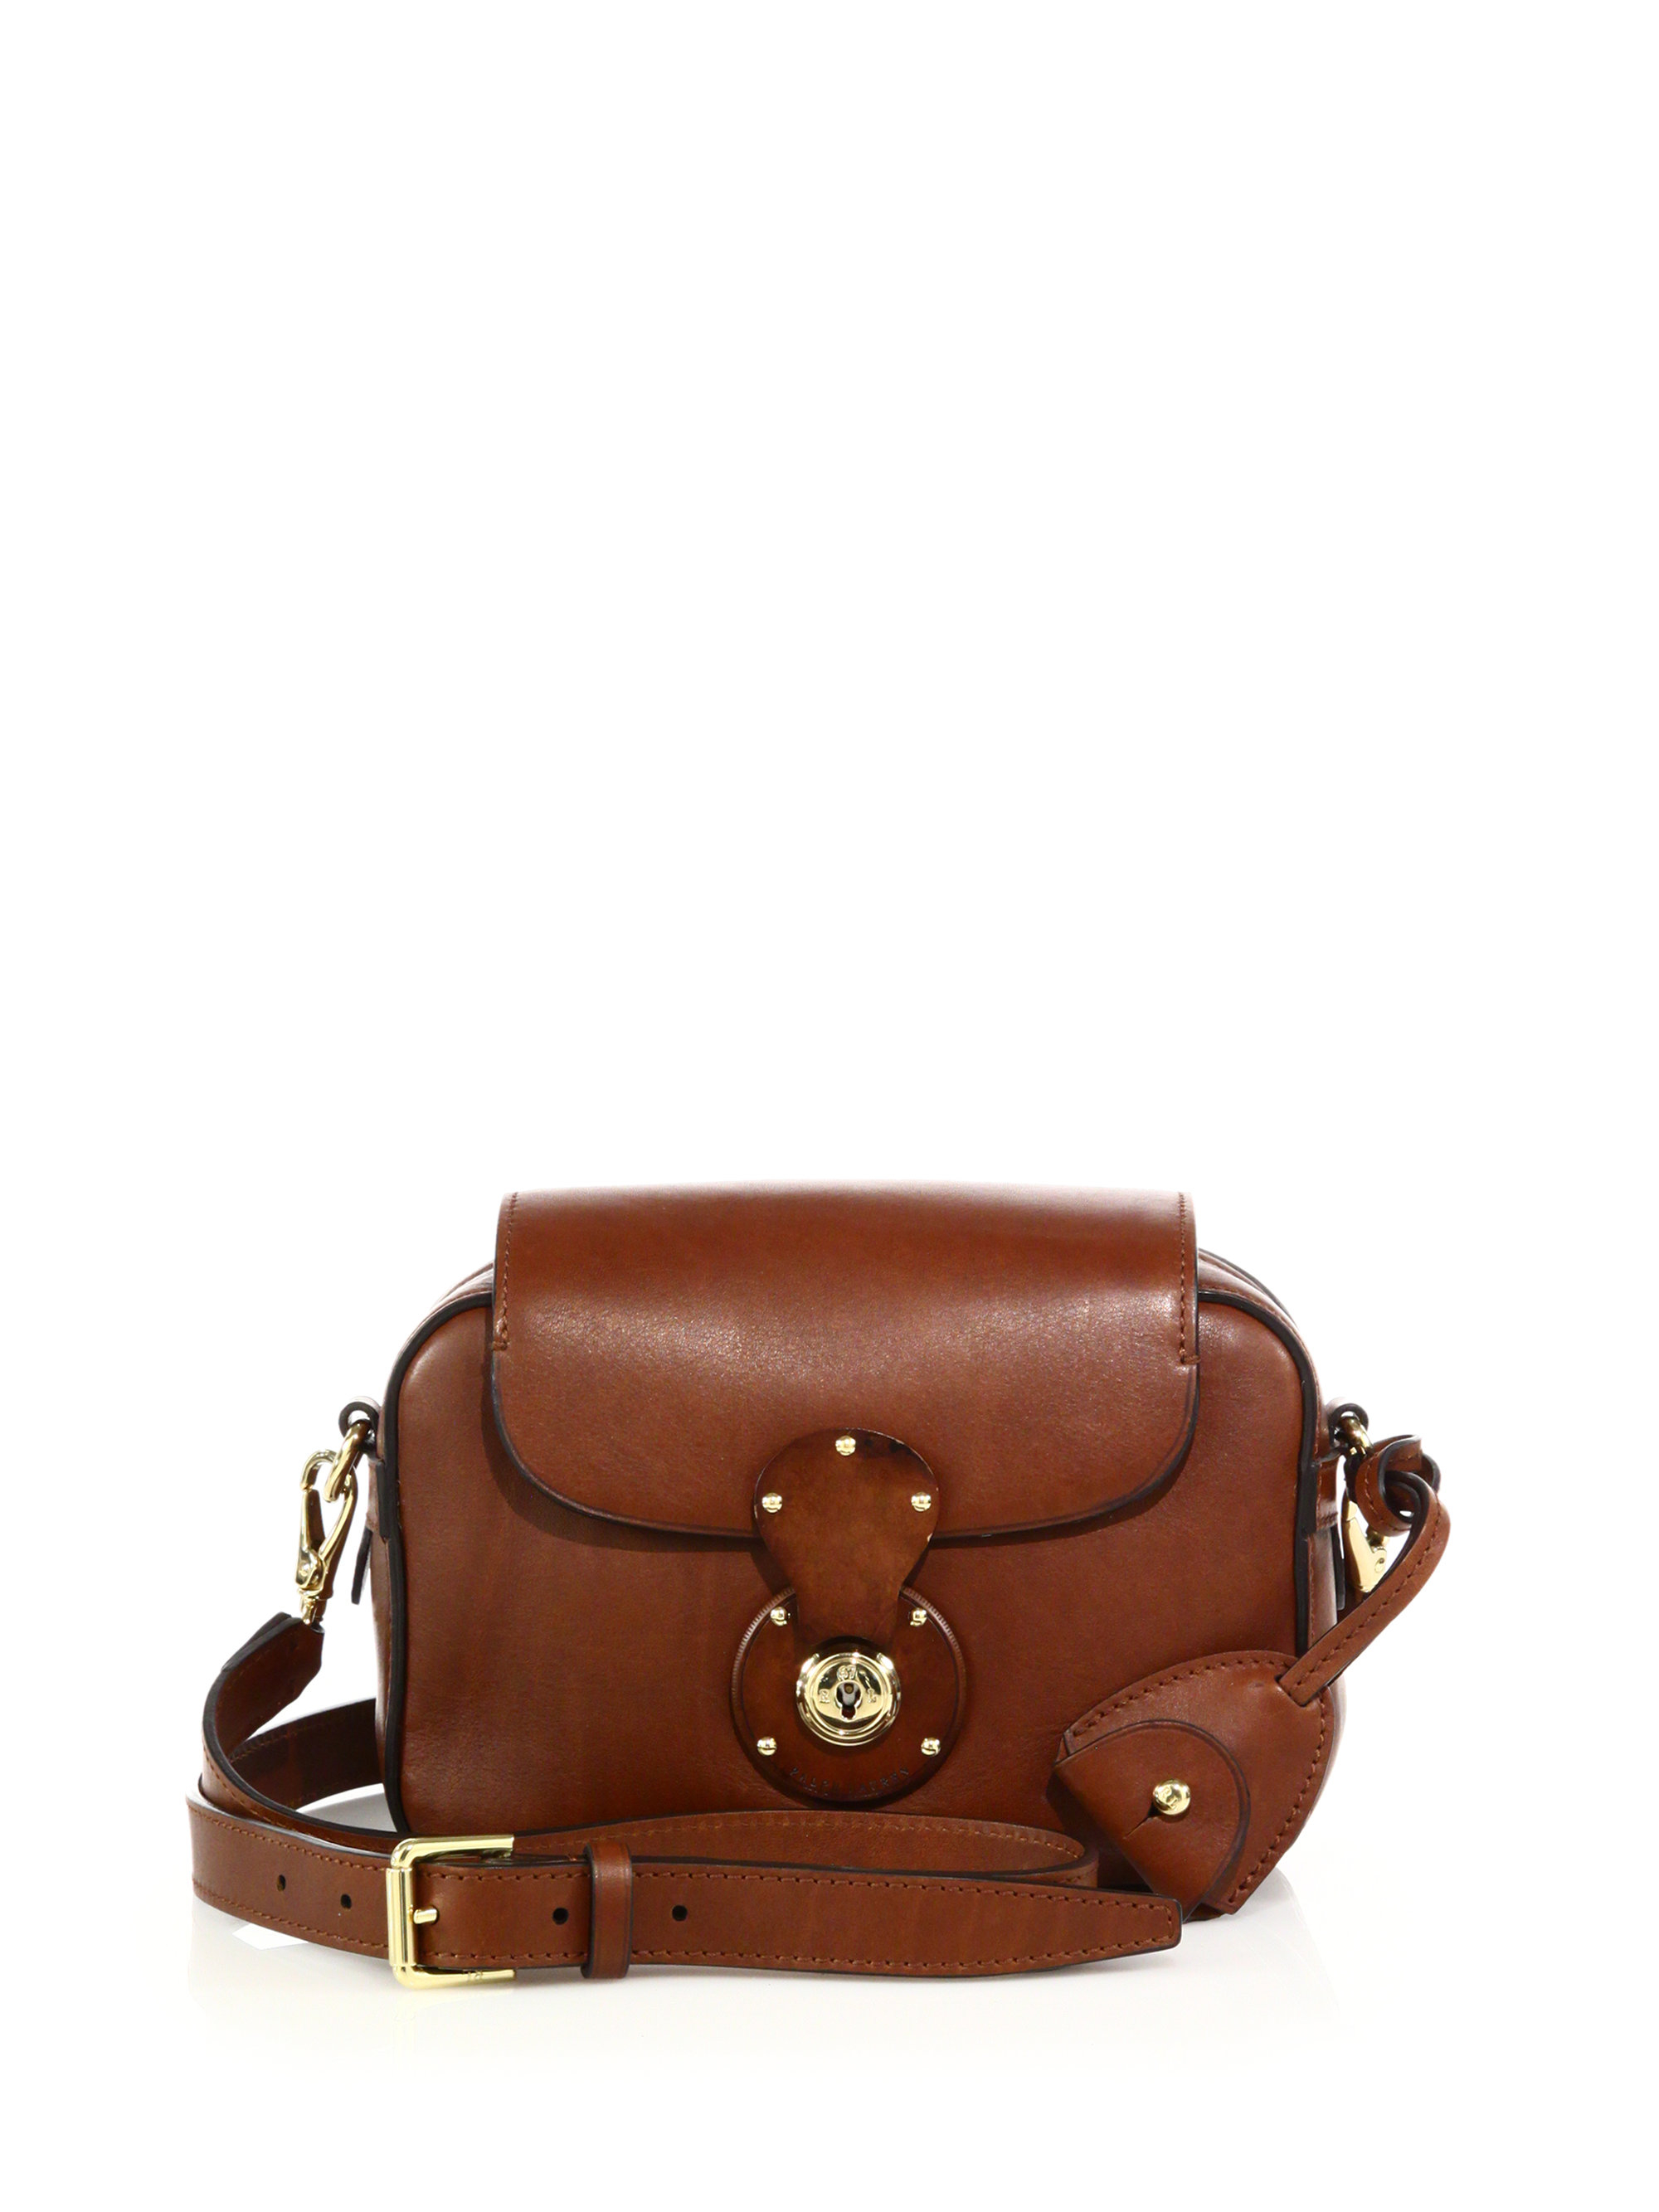 Chloé - Small Marcie Leather Crossbody bloggeri.tk, offering the modern energy, style and personalized service of Saks Fifth Avenue stores, in an enhanced, easy-to-navigate shopping experience.